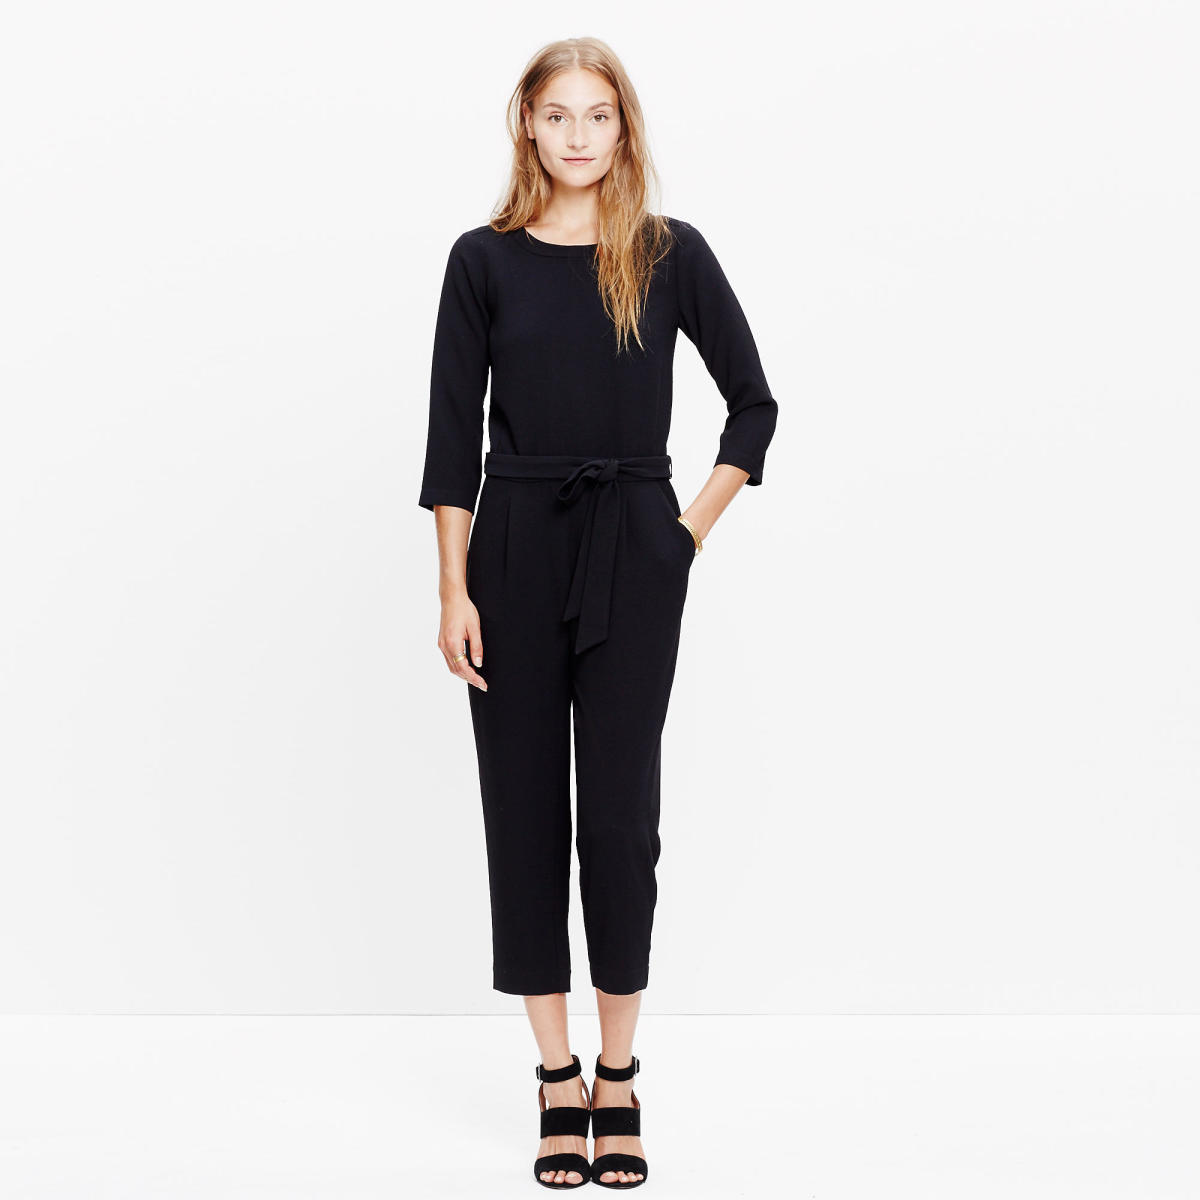 Madewell Sloan jumpsuit $118 (from $138) with code EARLYBIRD, available at Madewell.